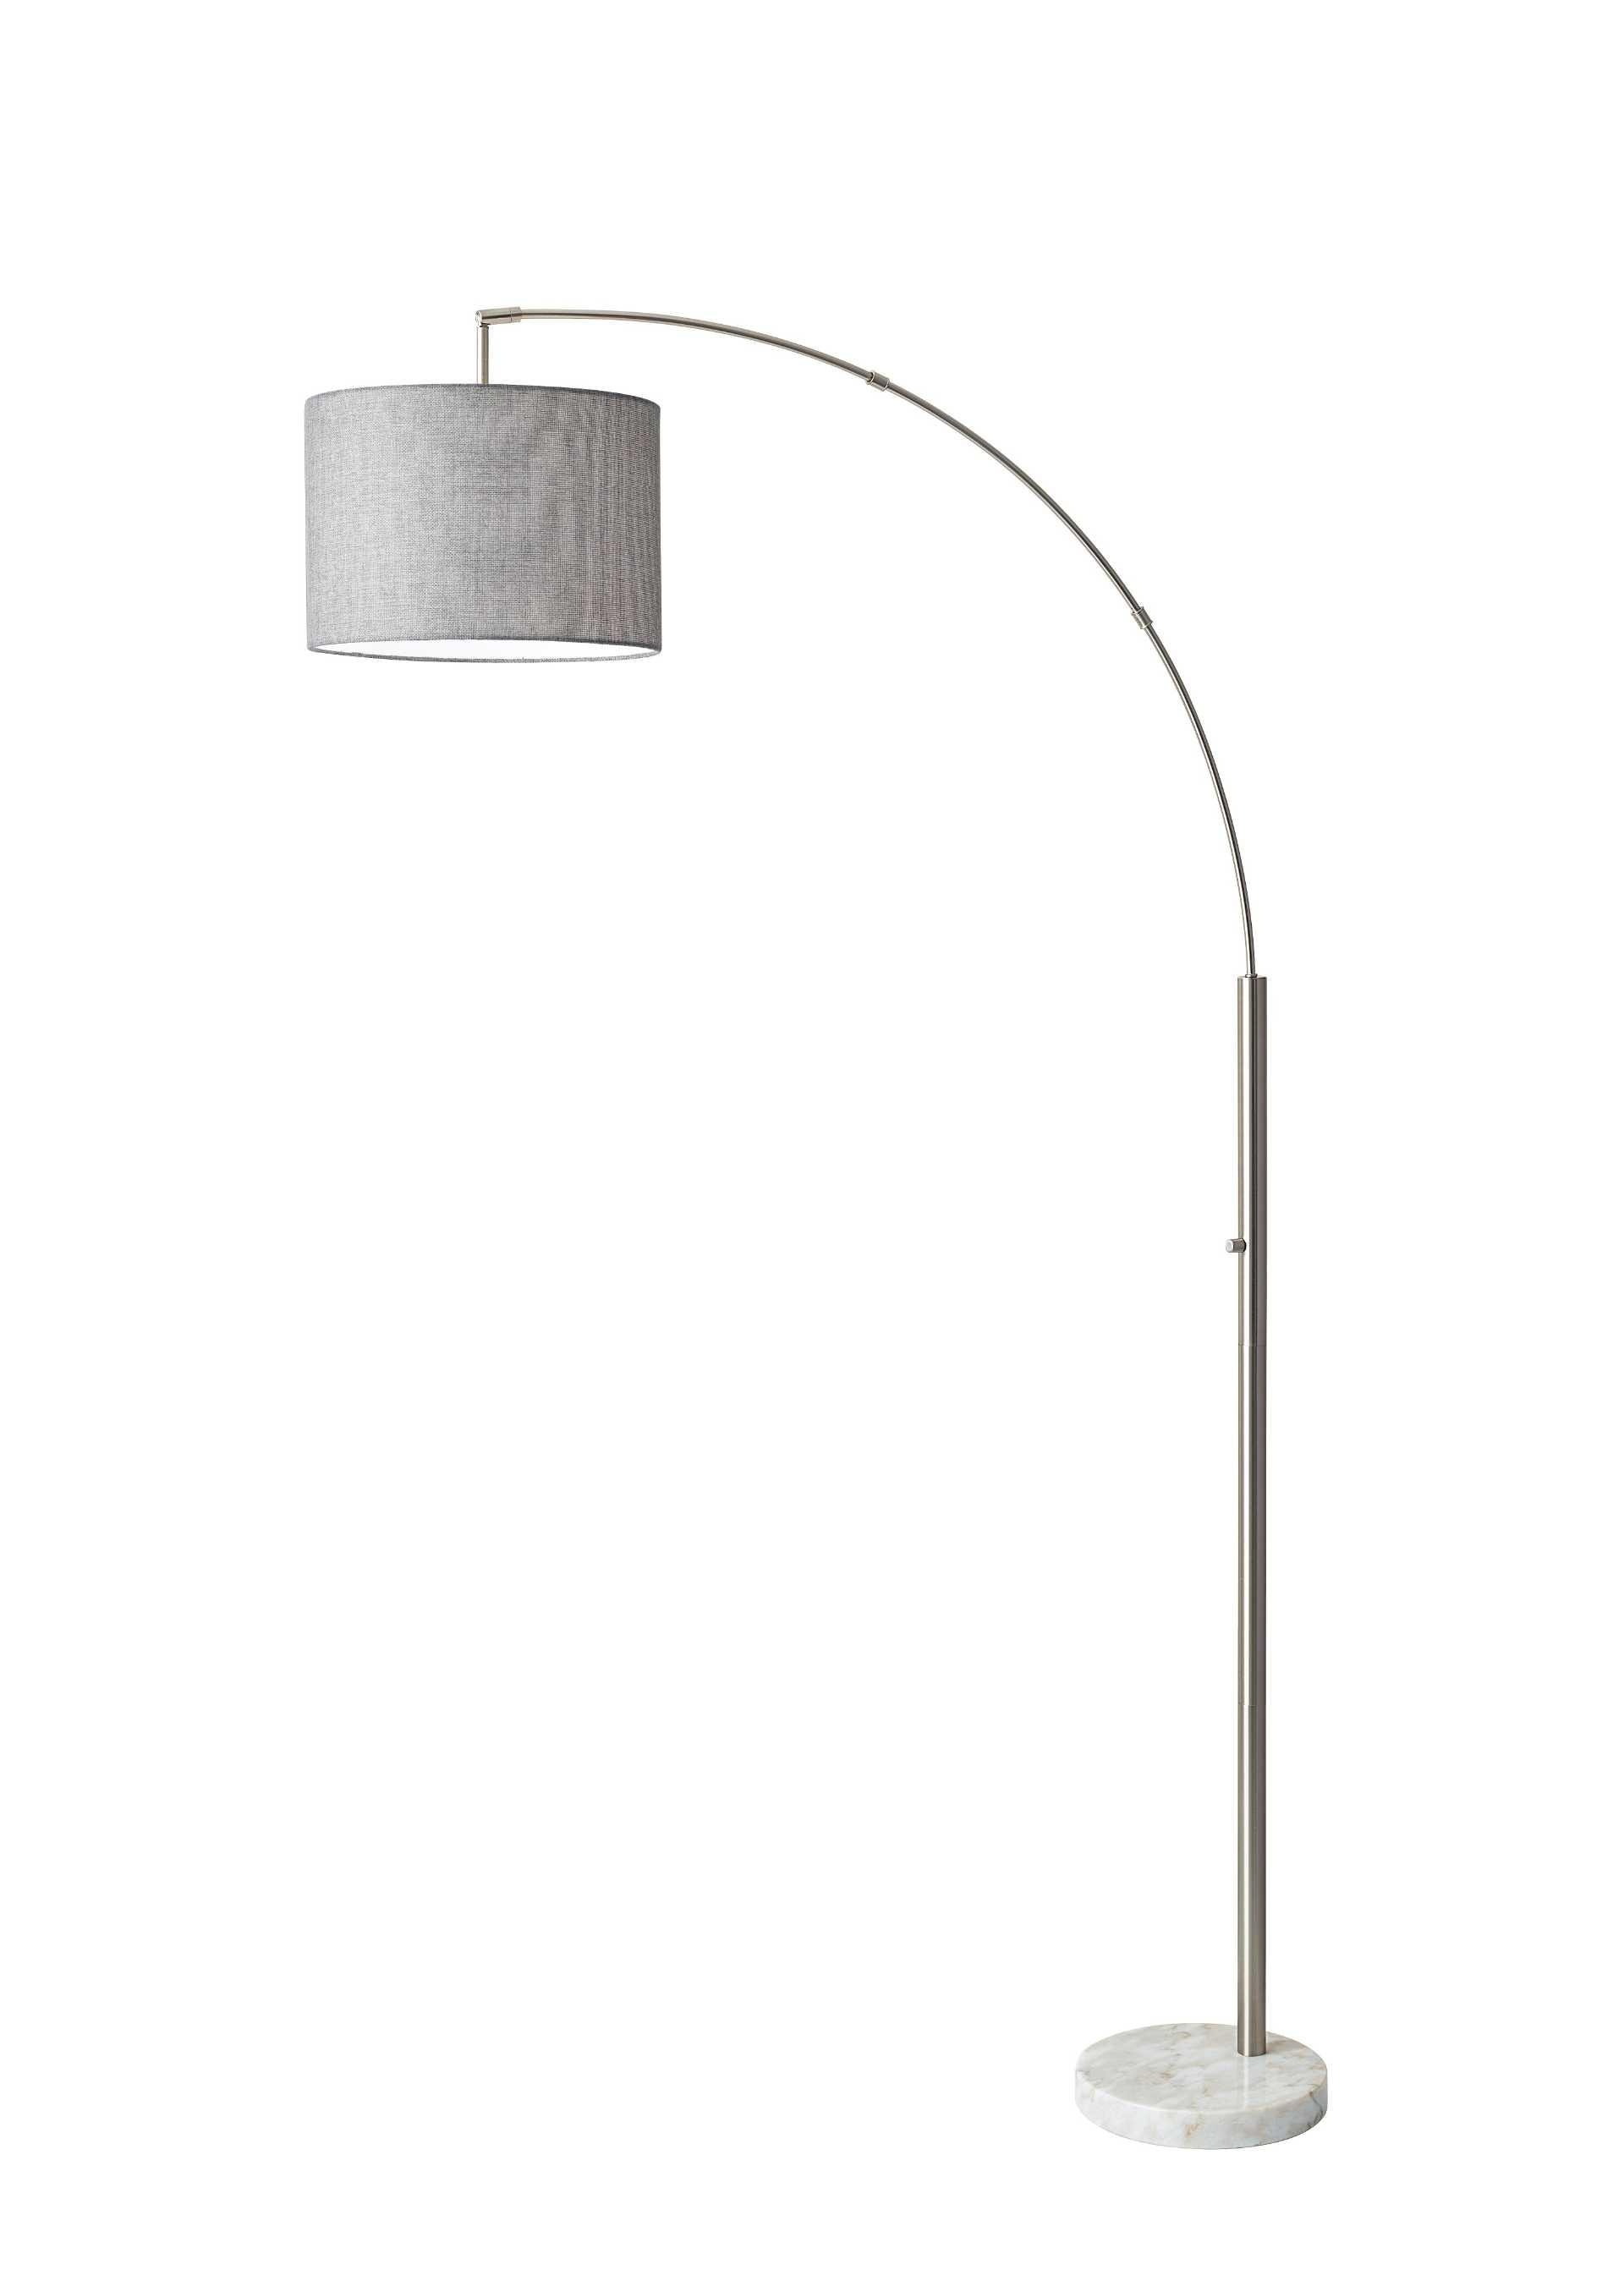 Adesso Lamps And Lighting Bowery Arc Lamp 4249 22 At Dewey Furniture